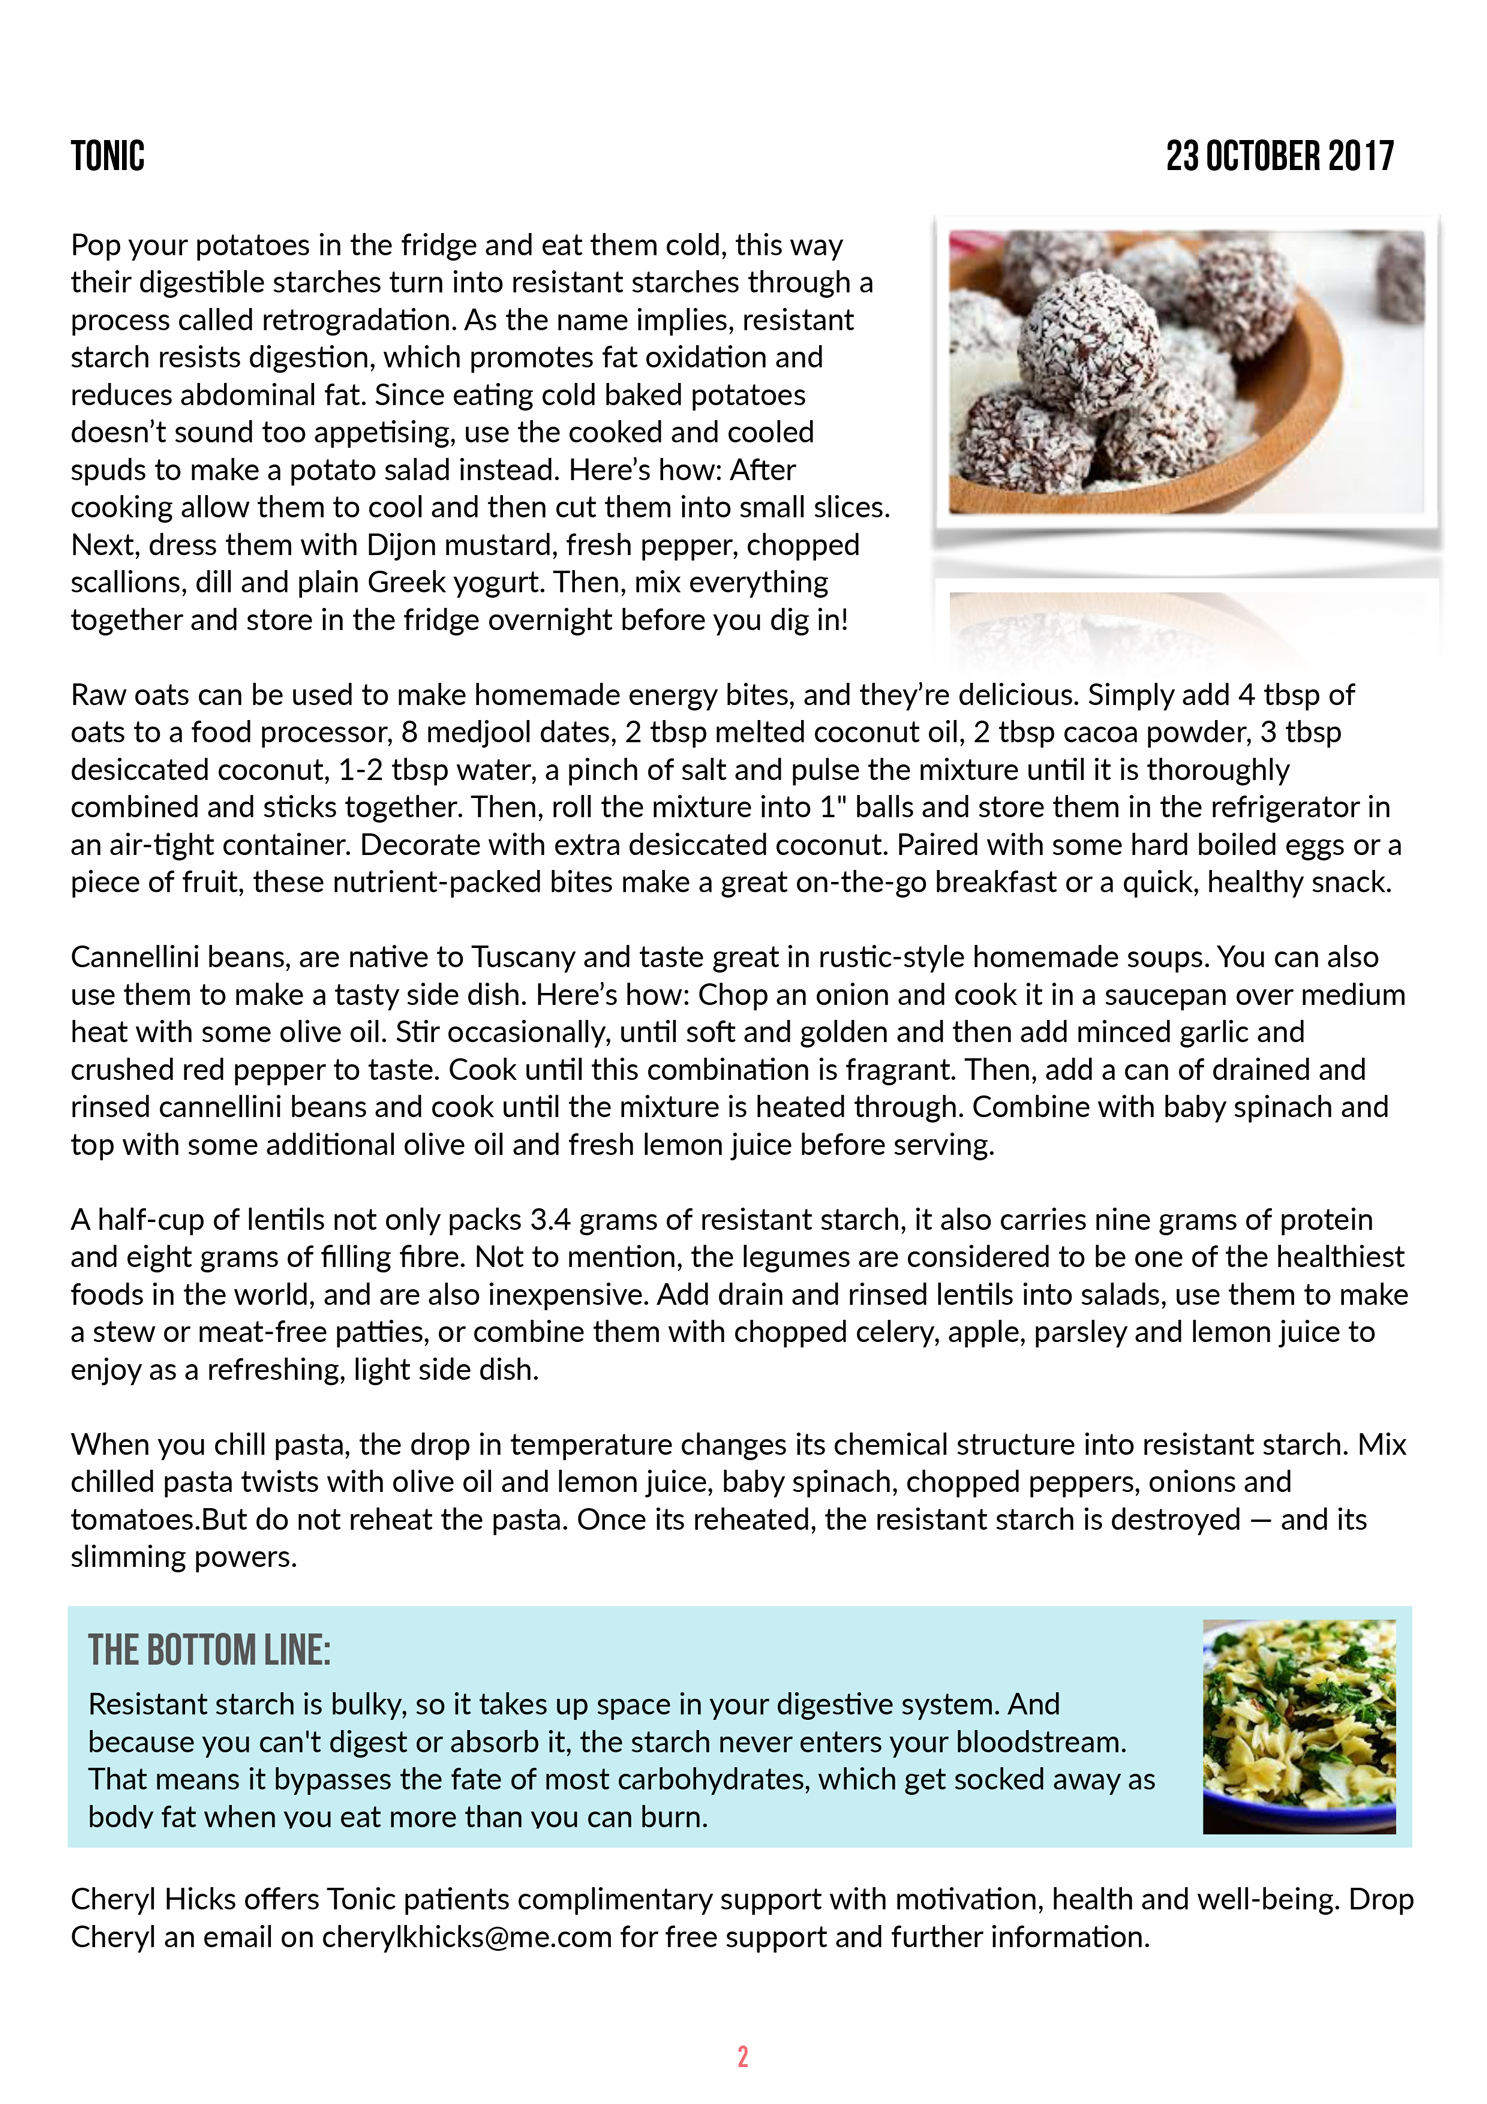 Tonic-newsletter-23rd-October-2017-Why-you-should-add-resistant-starch-to-your-diet--Page-2